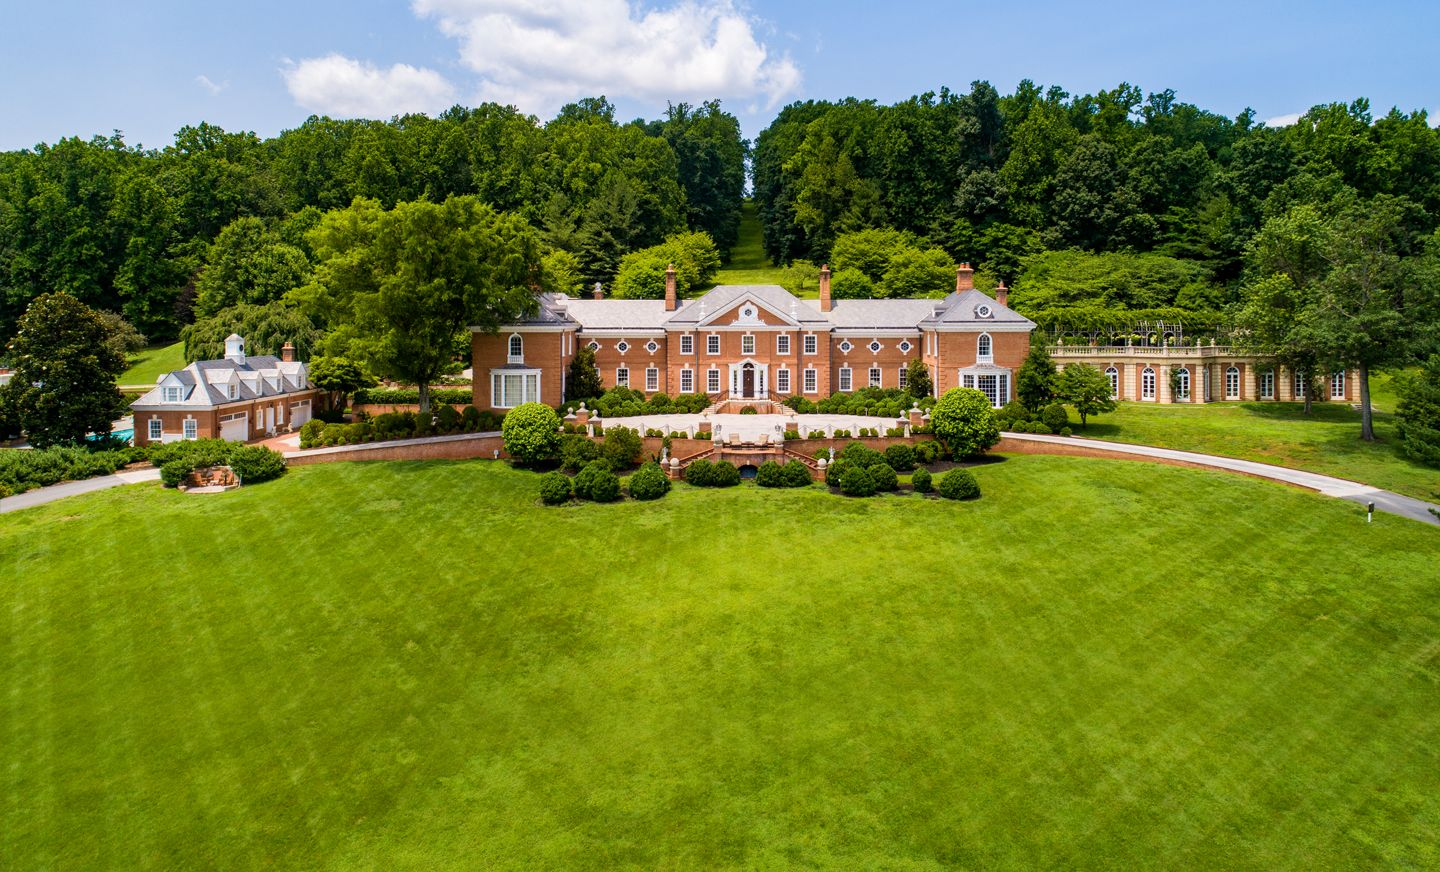 Drone Shot of Trump Winery Exterior and Grounds